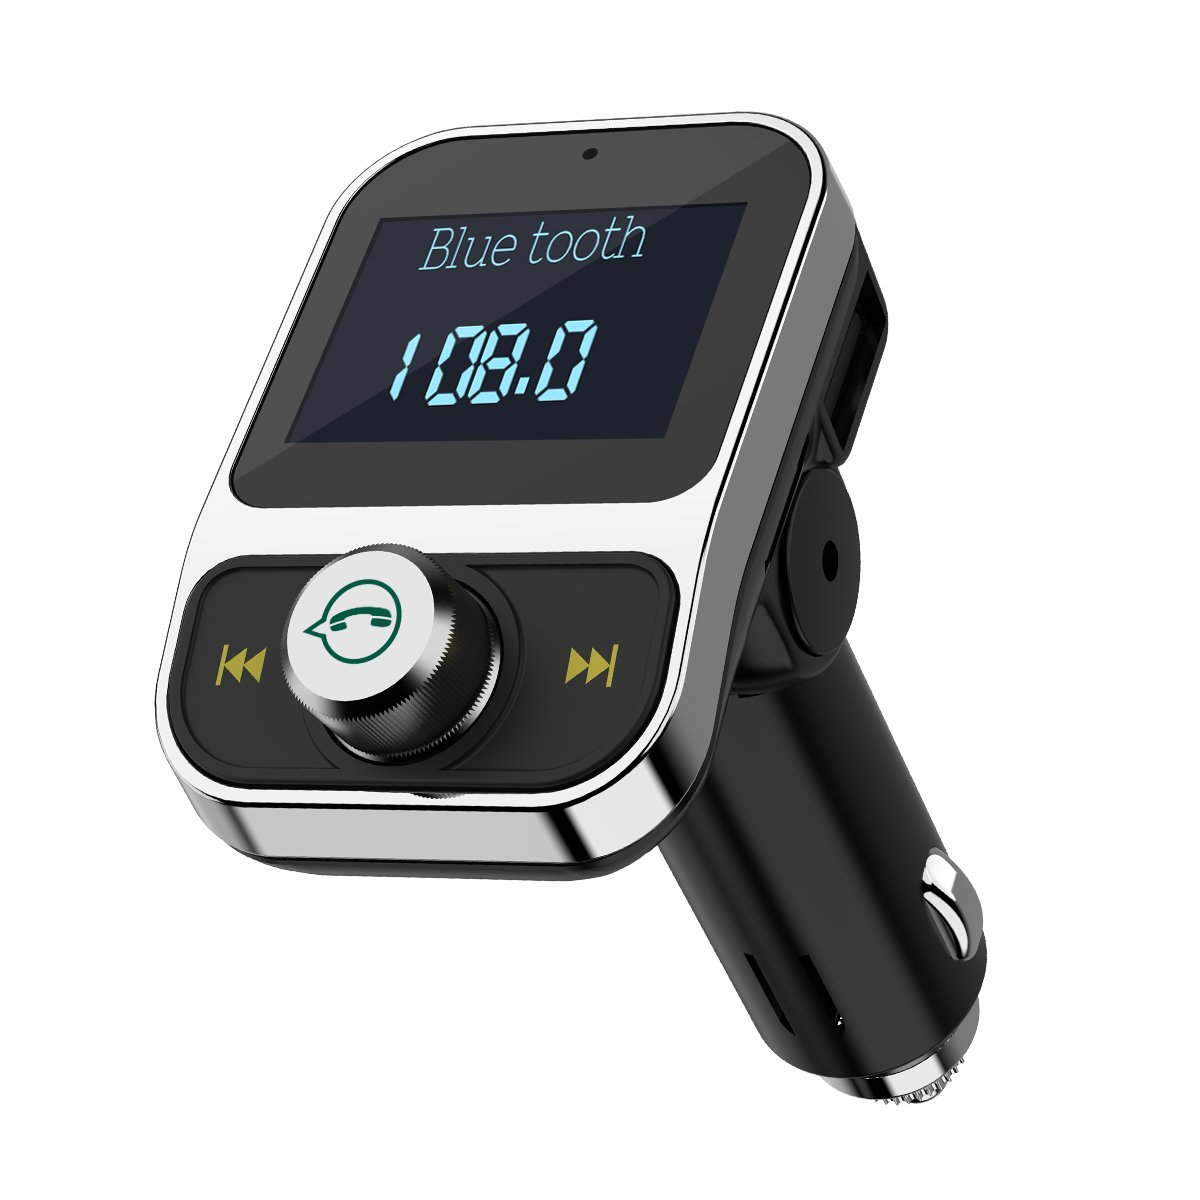 Criacr Bluetooth FM Transmitter, AUX Output, Wireless in-Car FM Transmitter Truck Radio Adapter Car Kit, 3.1A Dual USB Charging Port, CVC Noise Reduction, Hands-Free Call (Silver)